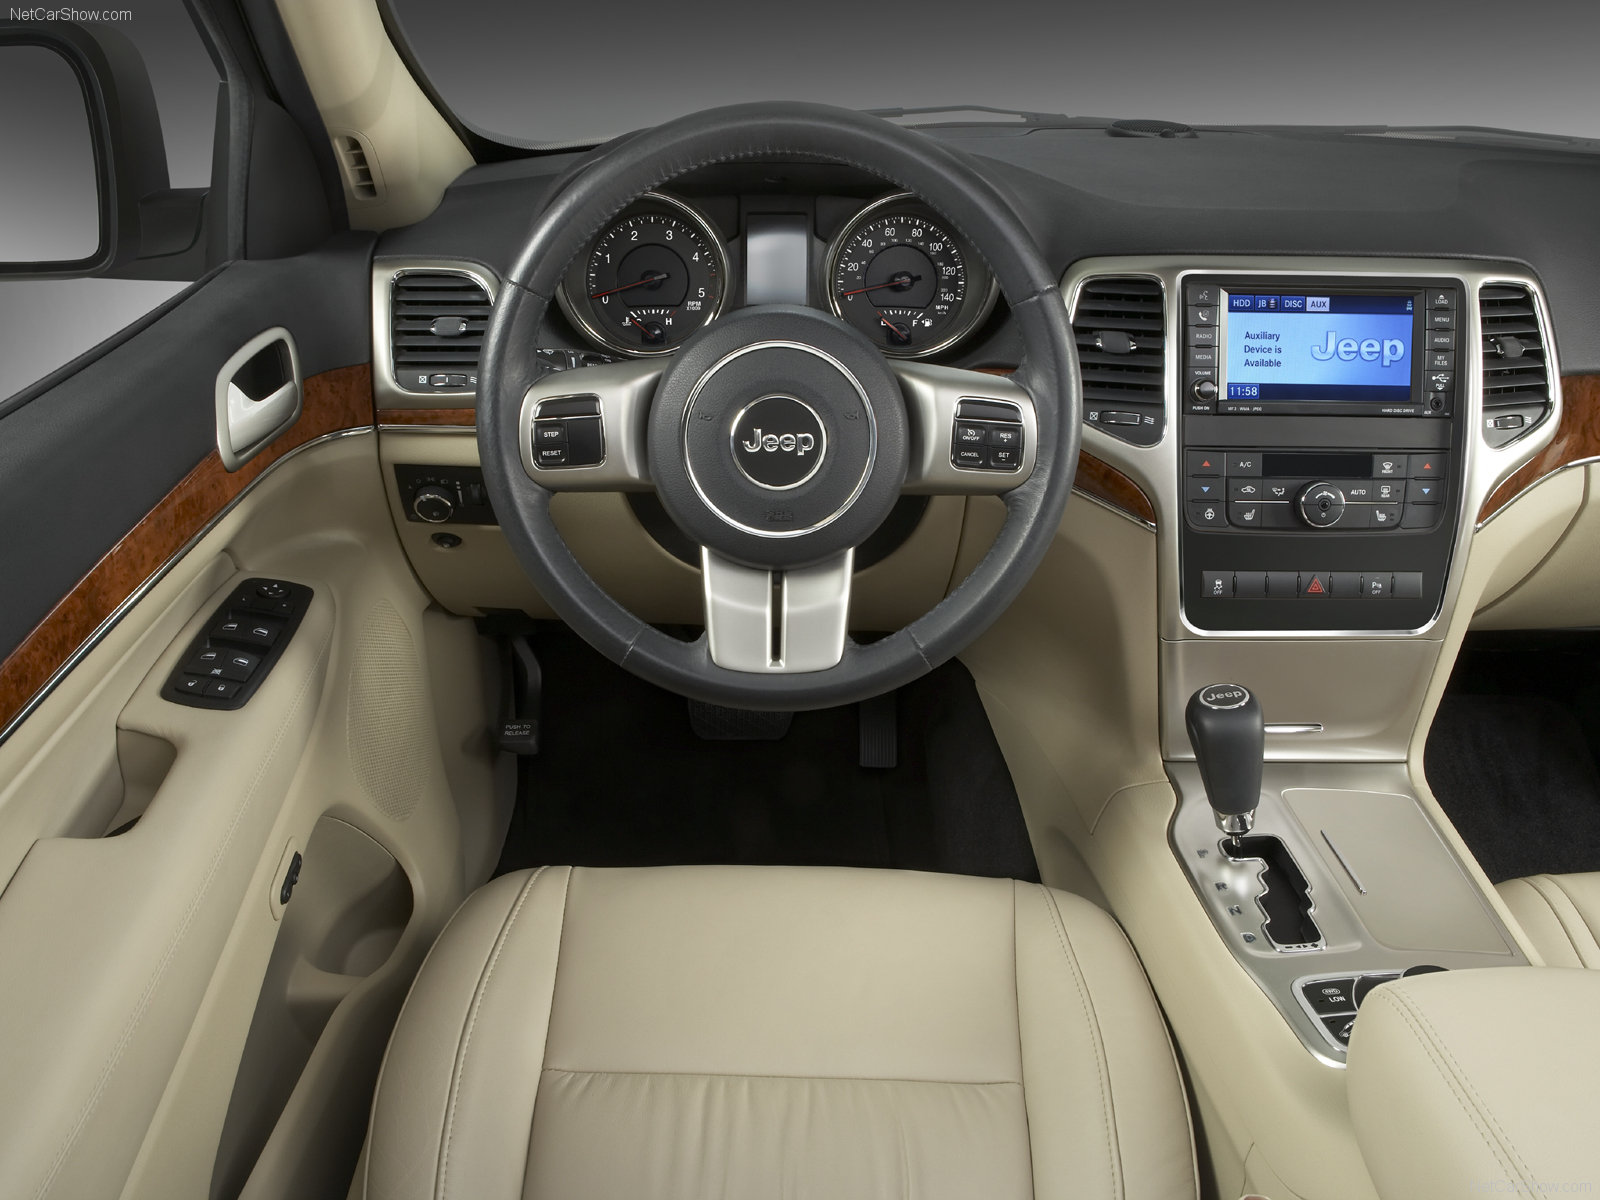 3dtuning of jeep grand cherokee suv 2011 - 2010 jeep grand cherokee interior ...